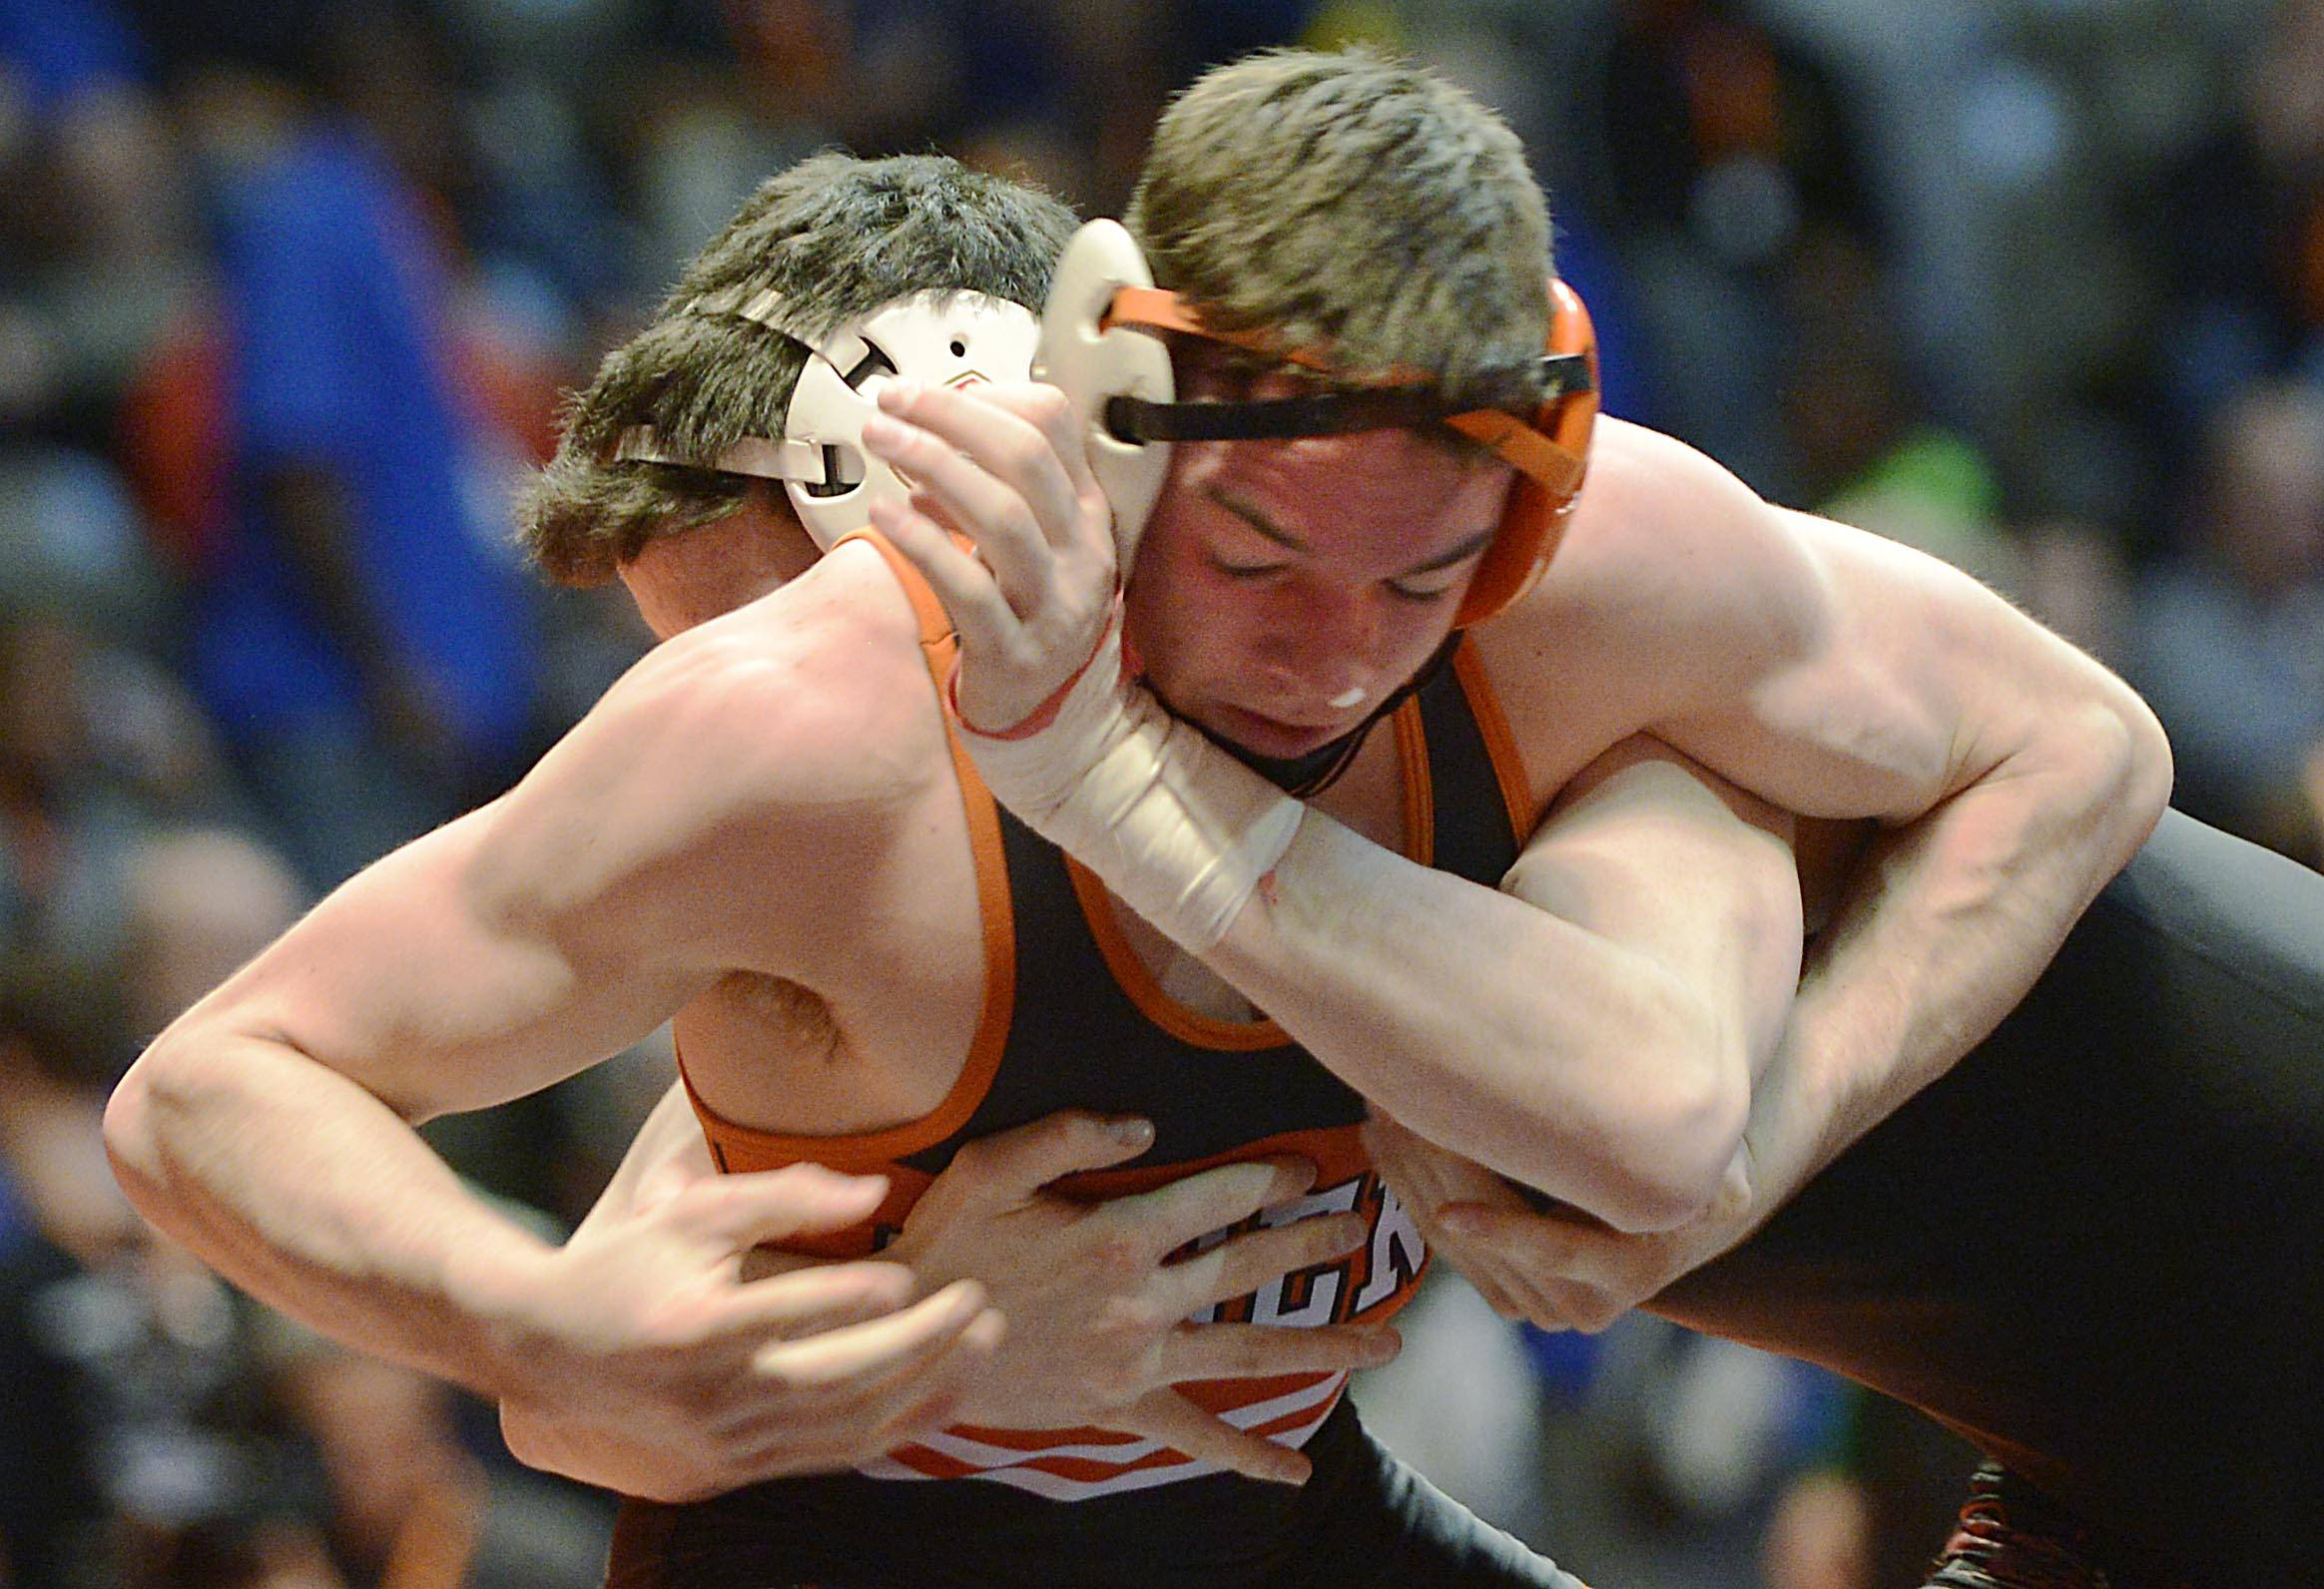 Qarin Johnnic of Wheaton Warrenville South High School competes against Mario Leveille of Marist High School Friday in the 138-pound weight class semifinals of the wrestling IHSA Class 3A state tournament at State Farm Center in Champaign.